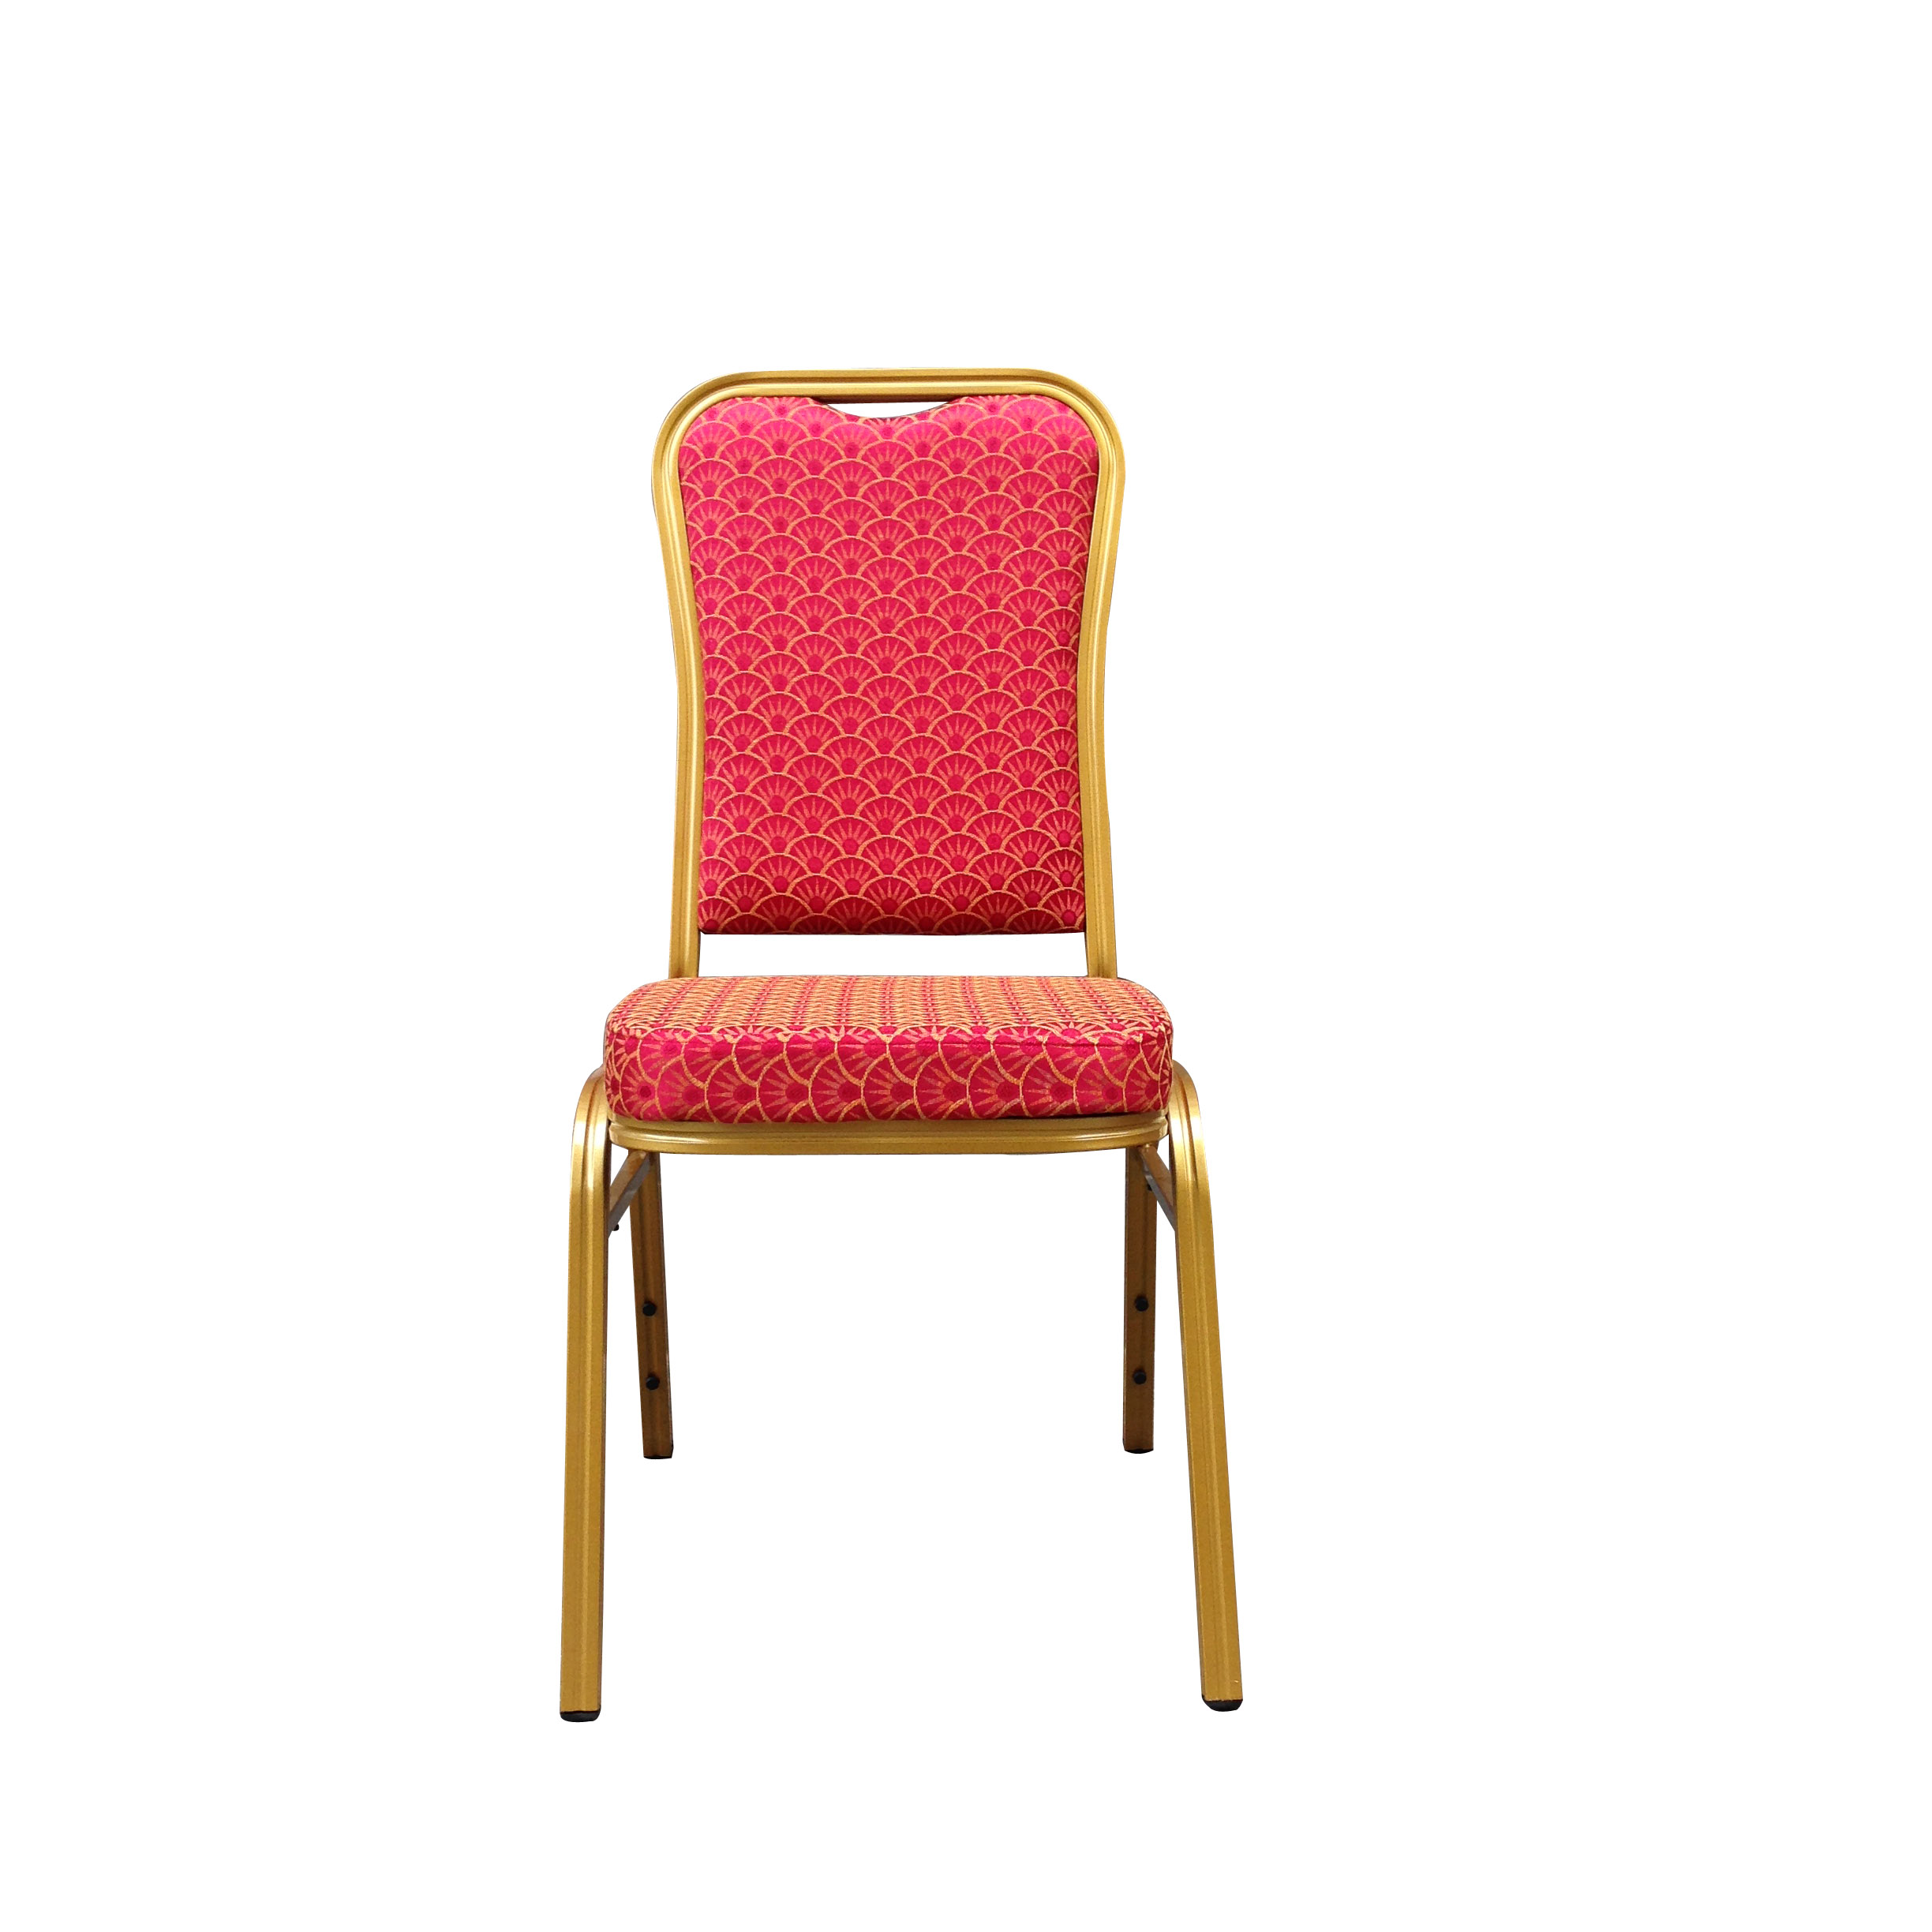 Used Banquet Chairs Used Banquet Chairs Wholesale Sf L02 China Foshan Jiangchang